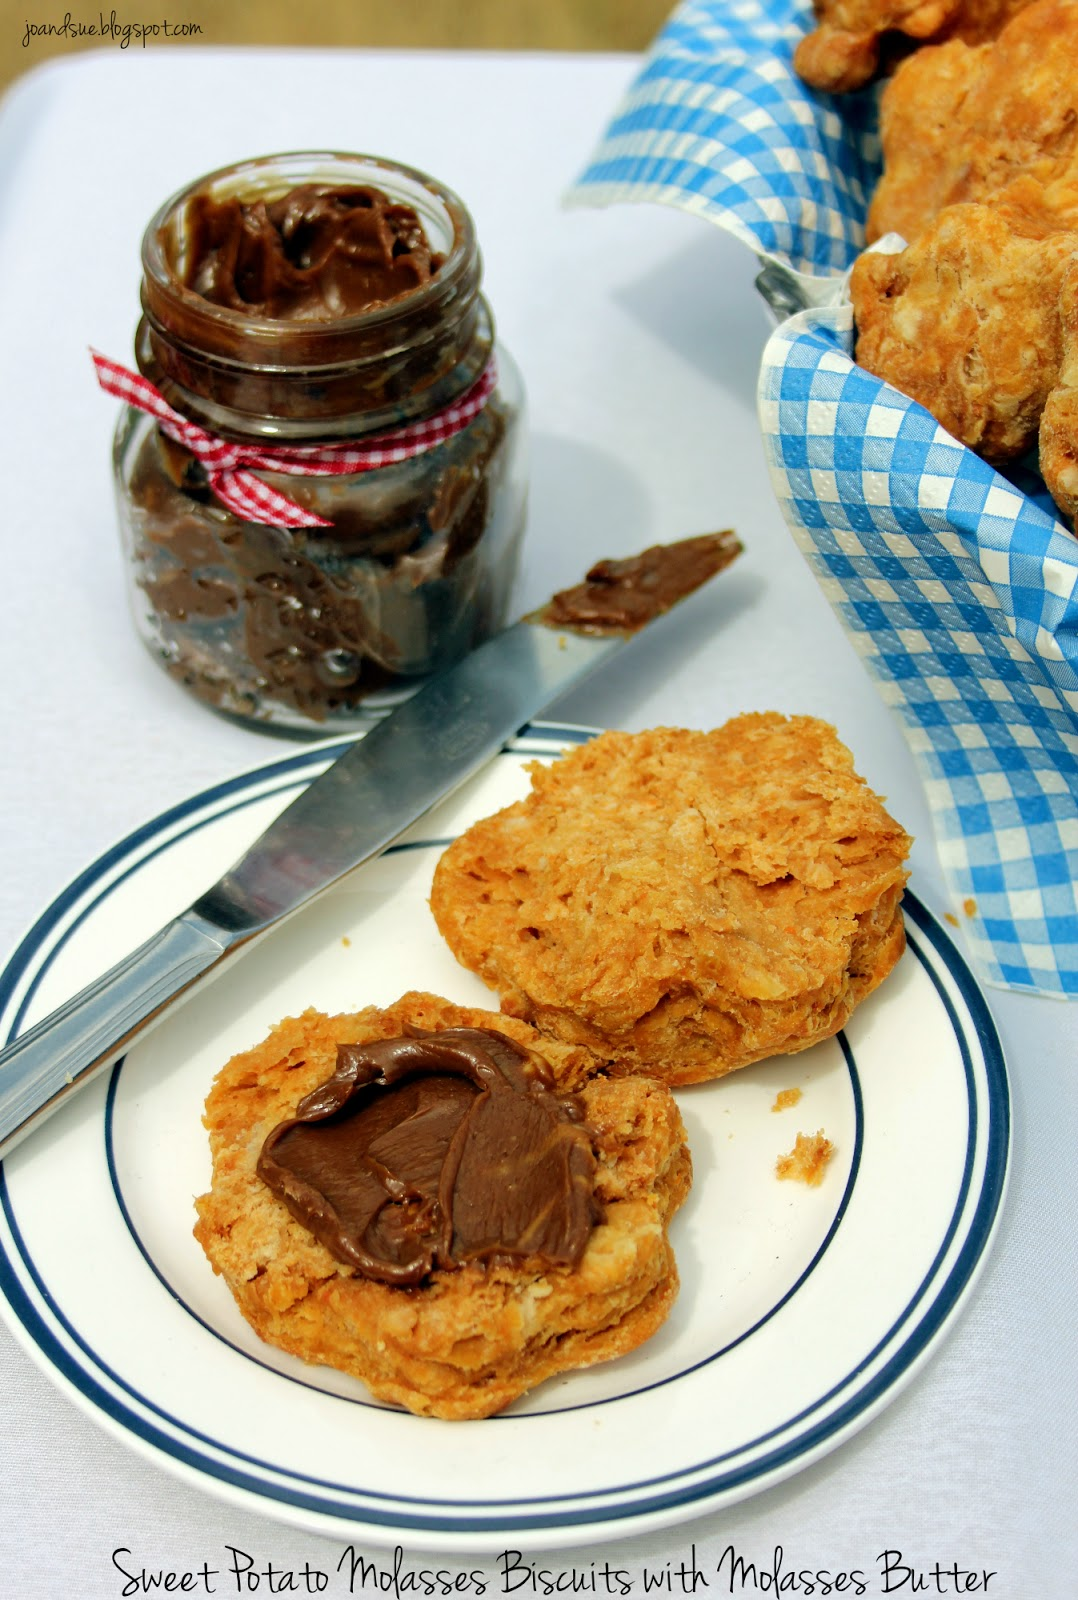 Jo and Sue: Sweet Potato Molasses Biscuits With Molasses Butter